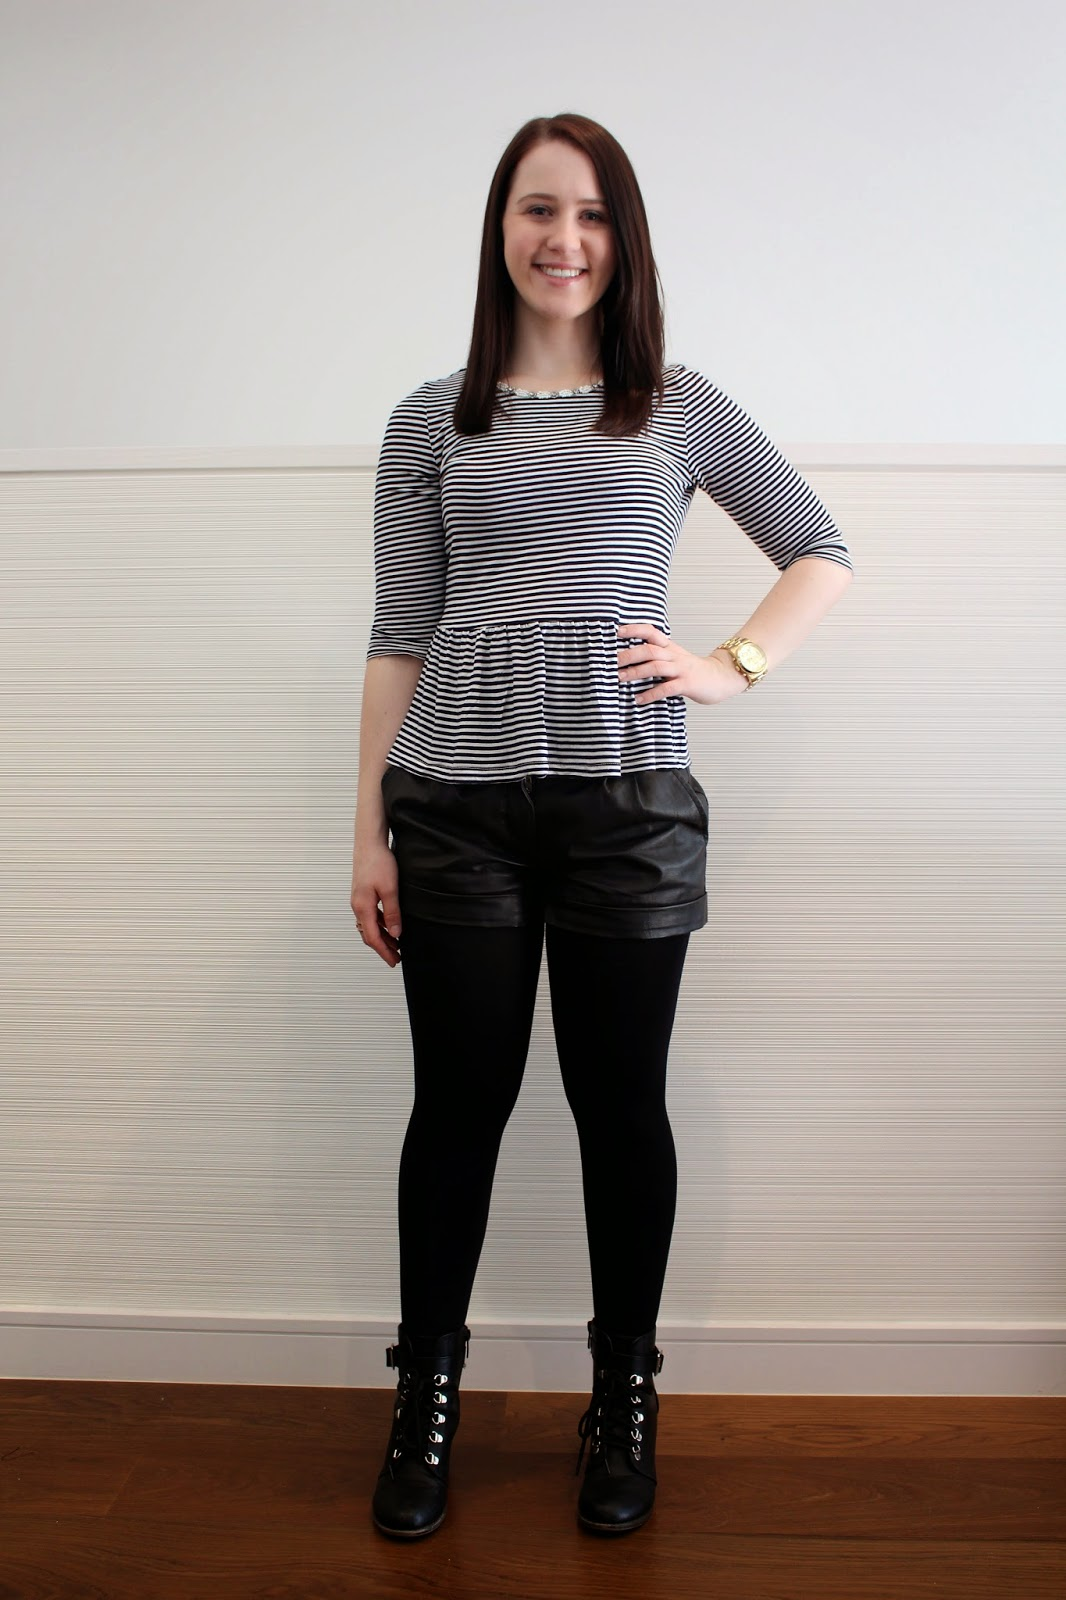 leather shorts, opaque tights, striped peplum top, denim jacket, michael kors gold watch, gold lovisa ring, spring outfit, autumn outfit, fall outfit, winter outfit, tights and biker booties, everyday outfit, college outfit, uni outfit, petite girl outfit, short girl outfit